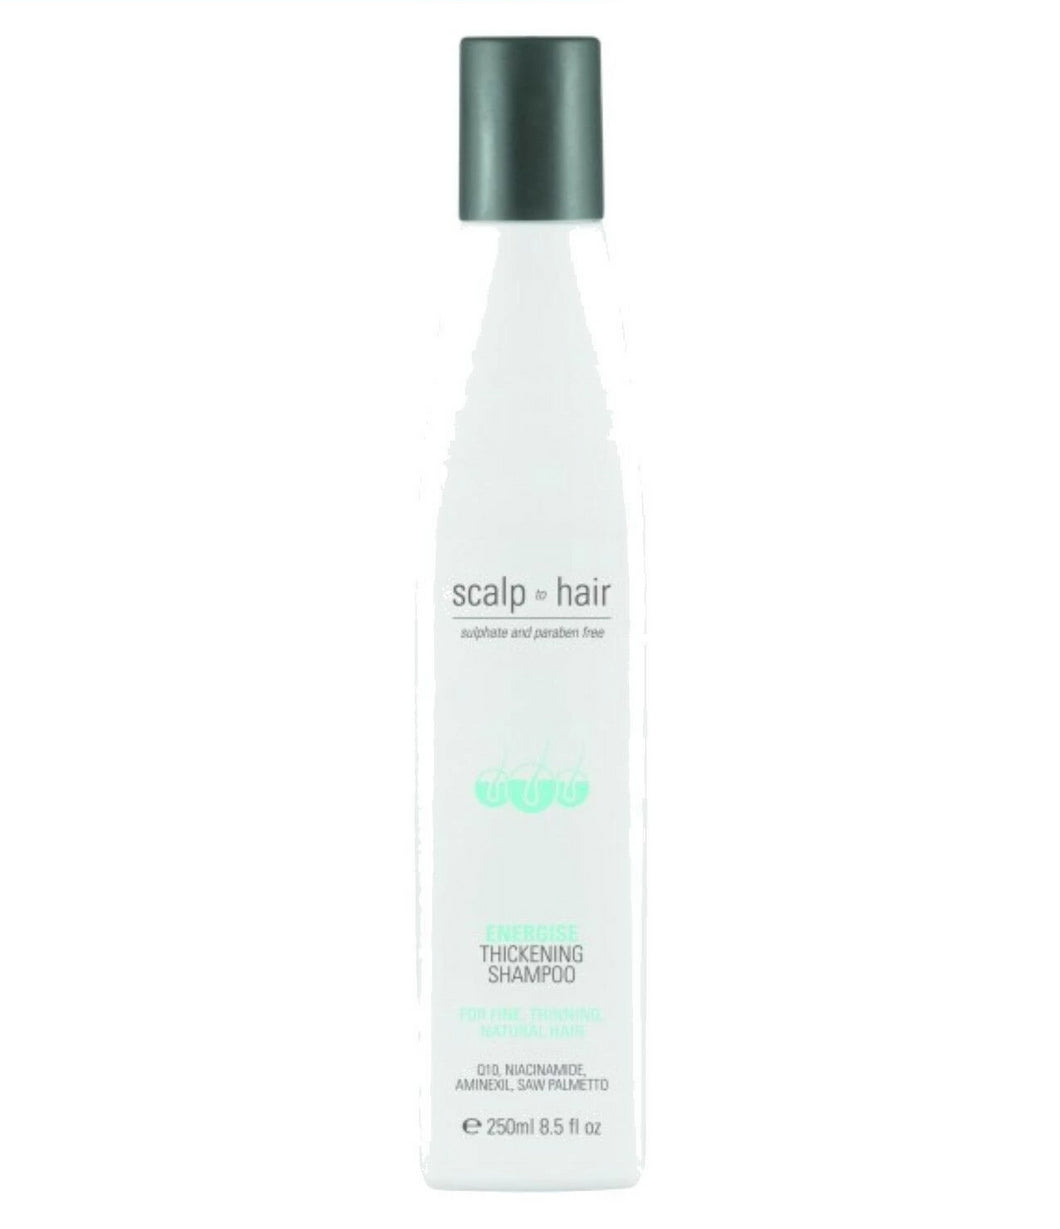 iaahhaircare,Nak Scalp to Hair Energise for Thicker Fuller Hair Shampoo Authorised Stockists,Hair Loss Treatments,Nak